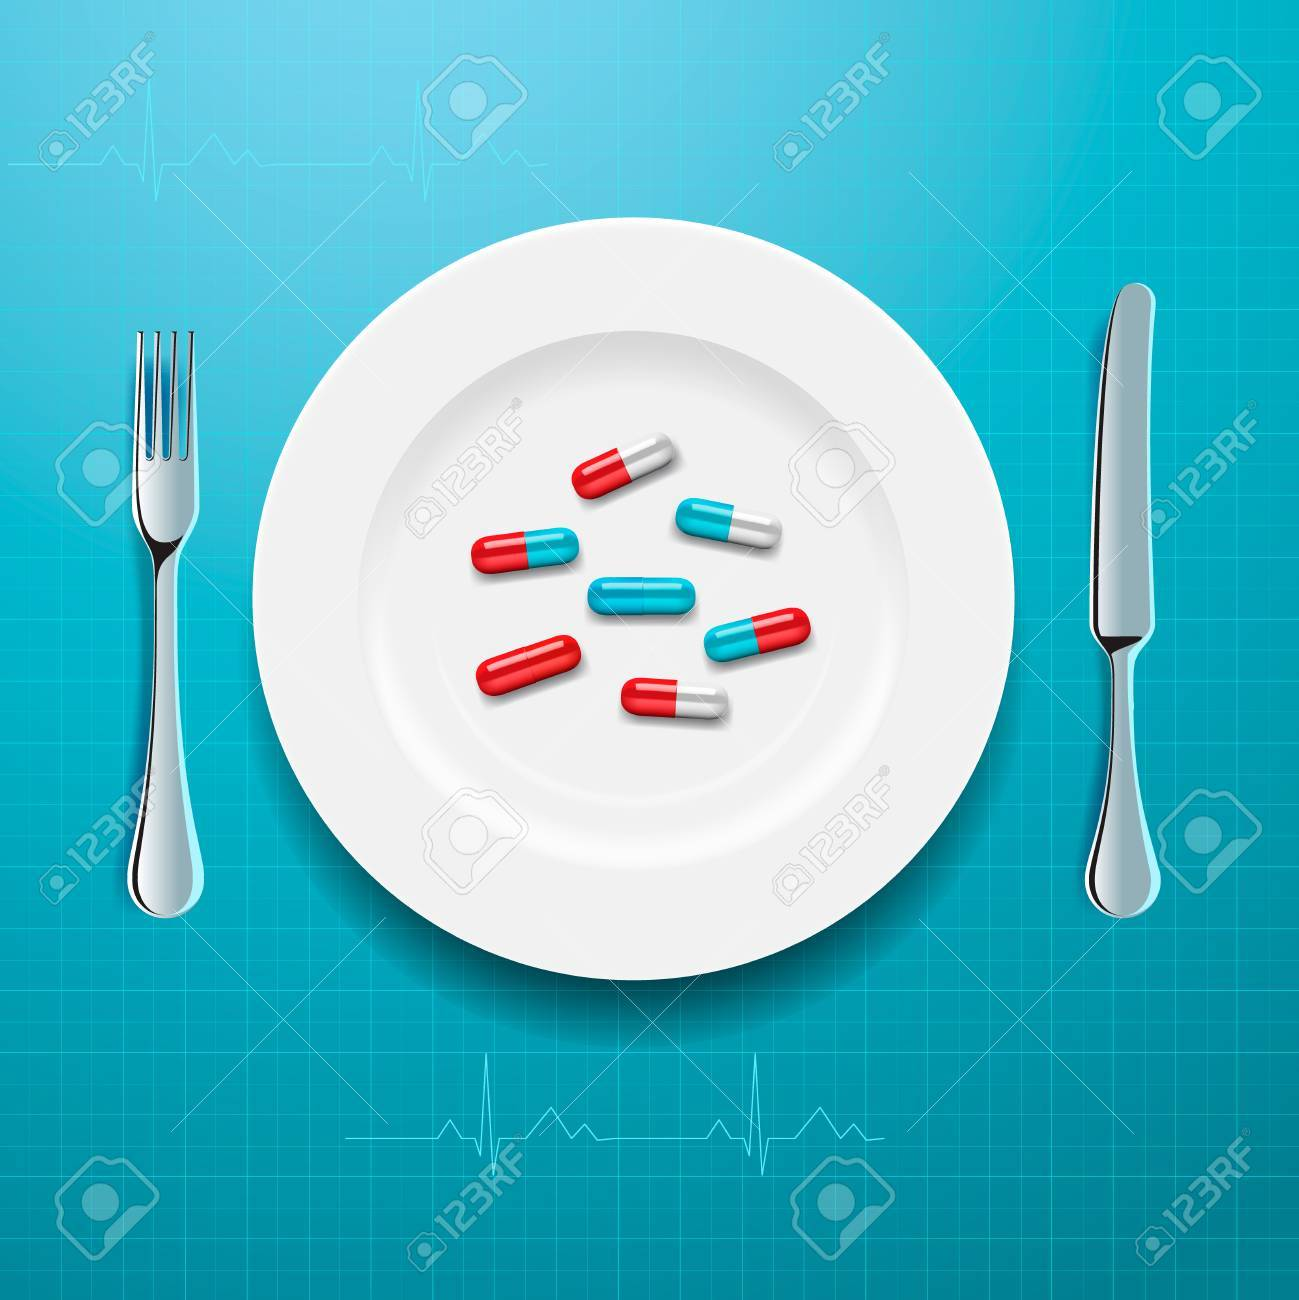 Pills on the plate, vector Eps10 illustration. Stock Vector - 22298981